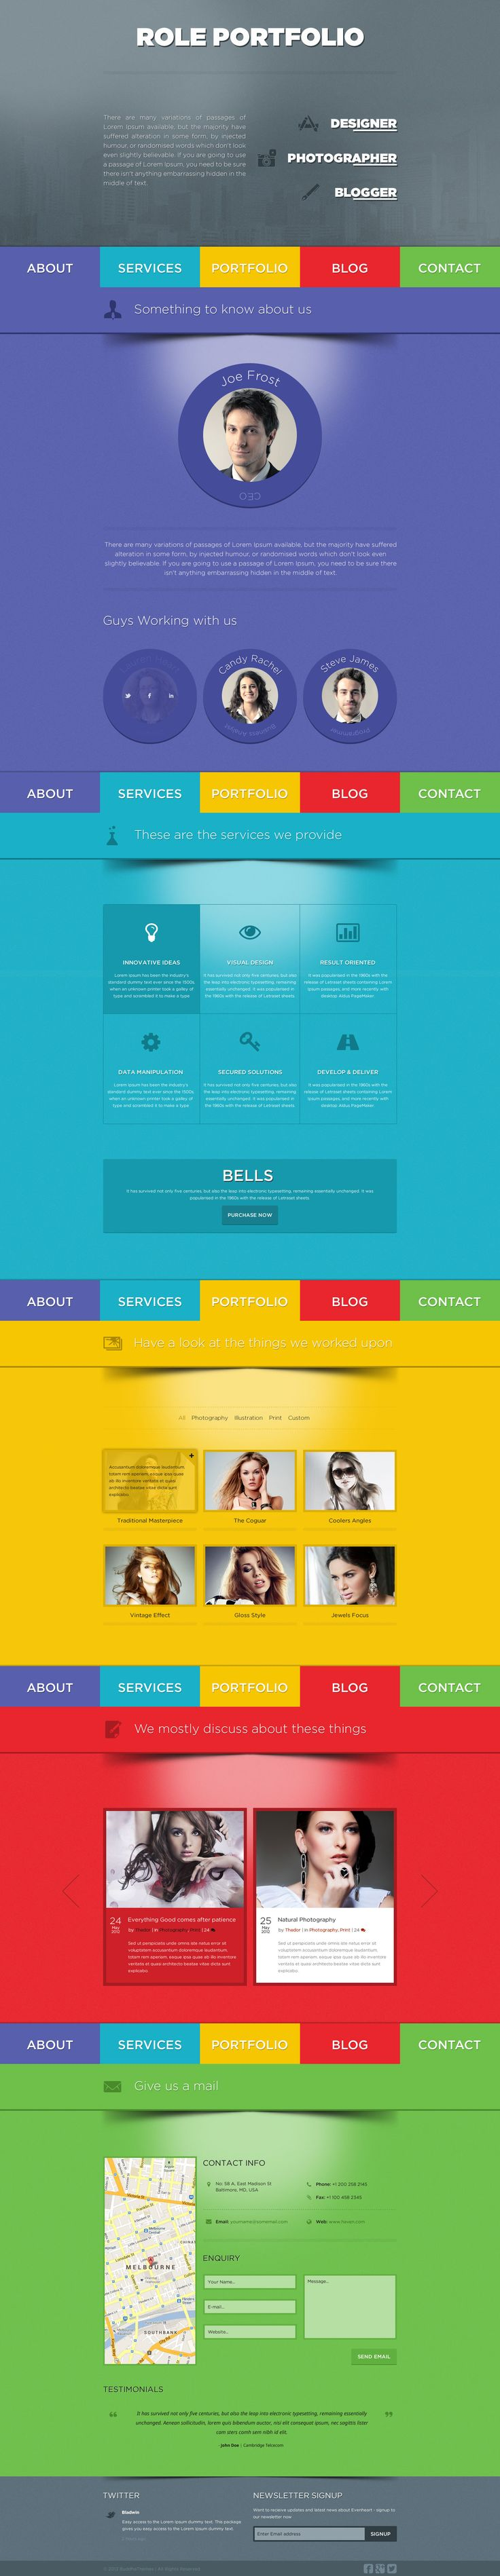 Hi thanks for your interest in Role – One Page Portfolio PSD Template ROLE is a vibrant Single Page / One Page PSD Template for Personal Portfolio, Web design Agency. With ROLE, you can customise your thought of the website in a colorful manner. It is so versatile that and accompanies any one page website.